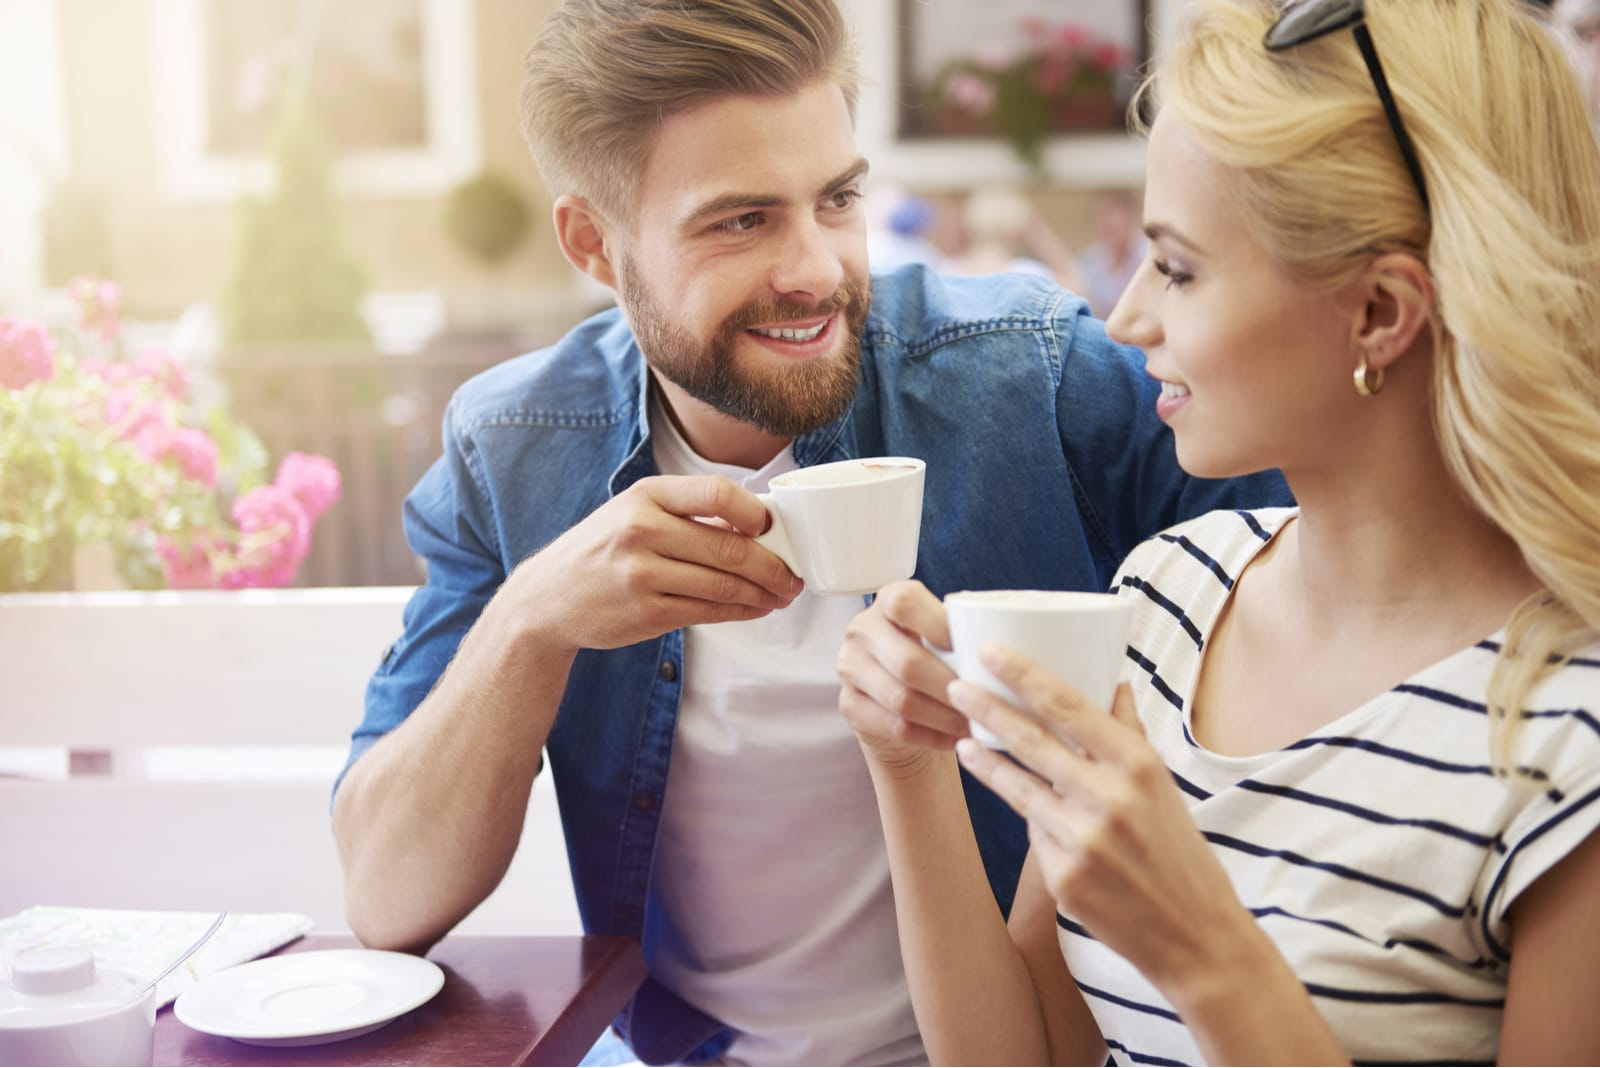 man with beard drinking coffee and talking with woman